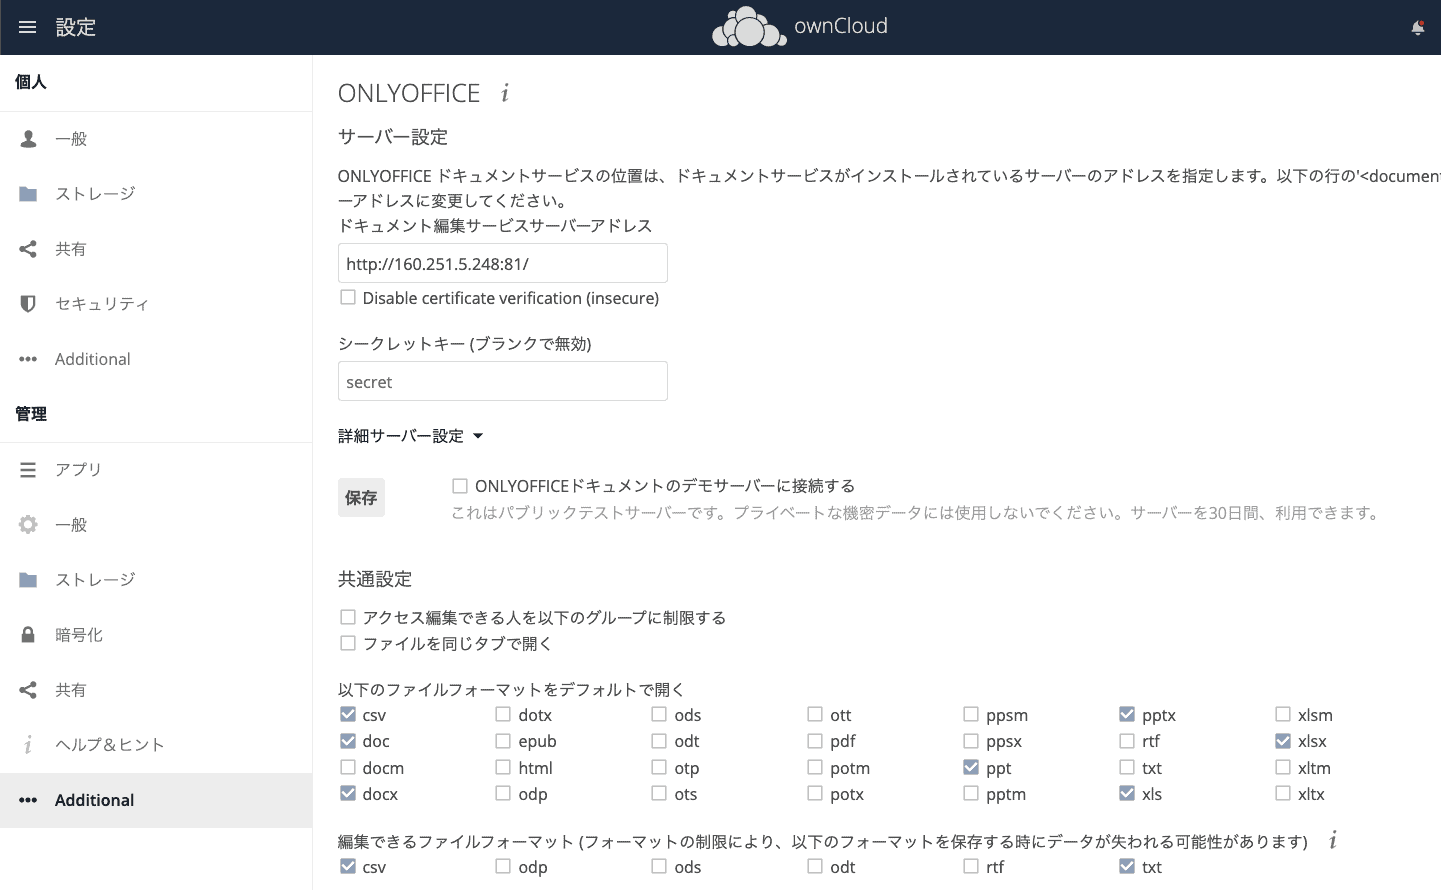 onlyoffice-additional.png